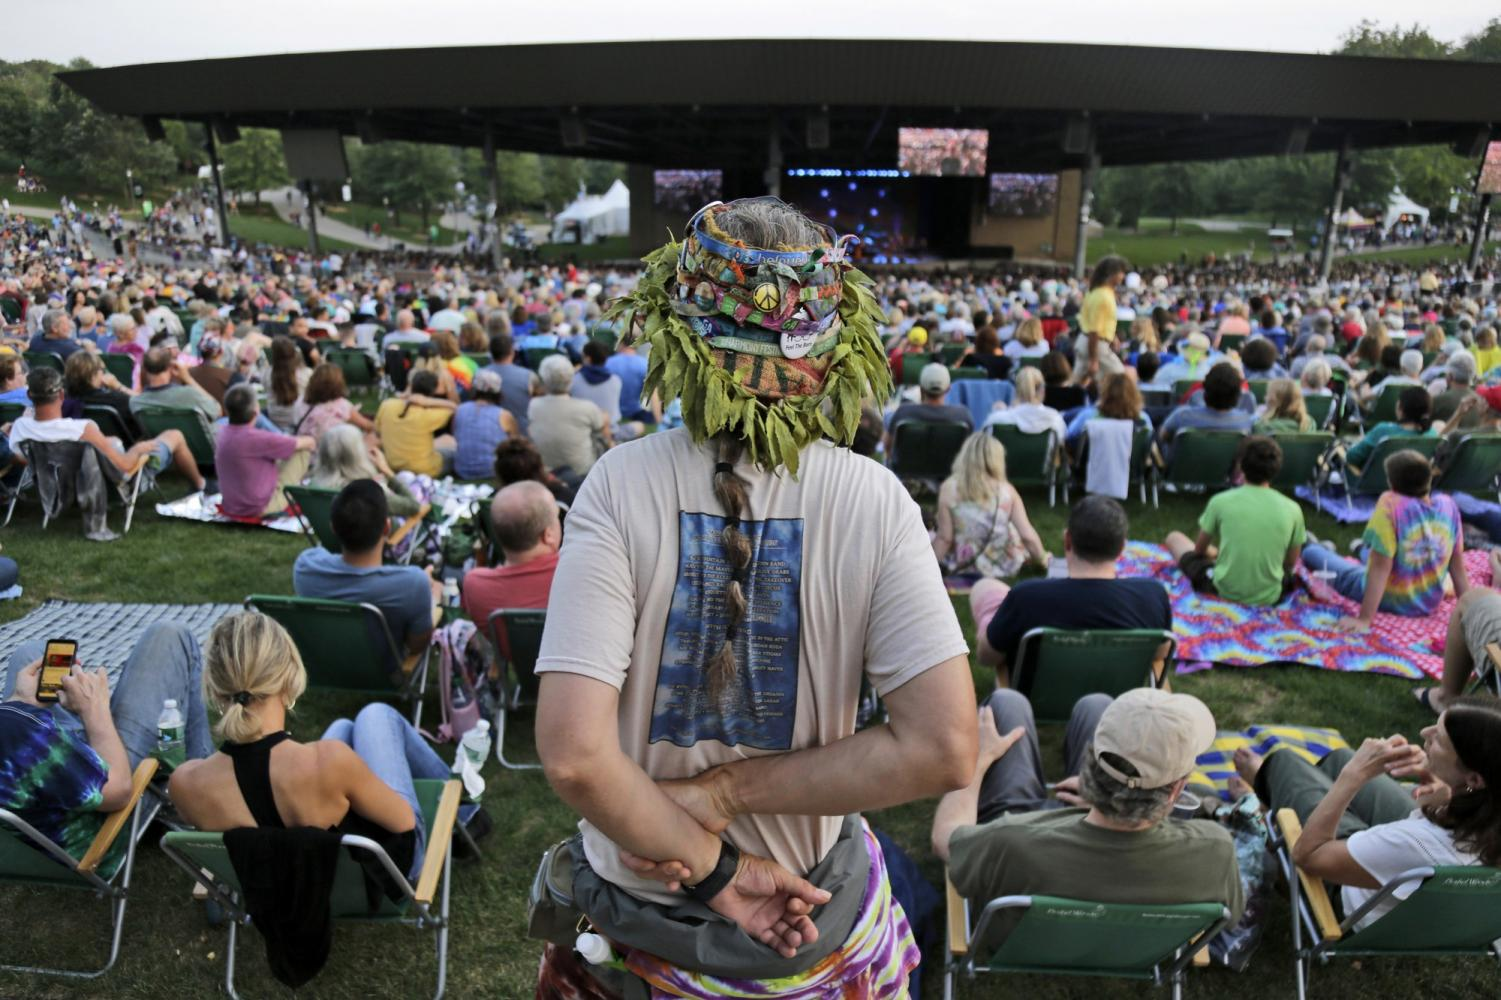 Music fans listen to the band Blood, Sweat and Tears play at a concert celebrating the 50th anniversary of Woodstock in Bethel, N.Y., Friday, Aug. 16, 2019. Bethel Woods Center for the Arts is hosting a series of events Thursday through Sunday at the bucolic 1969 concert site, 80 miles (130 kilometers) northwest of New York City.